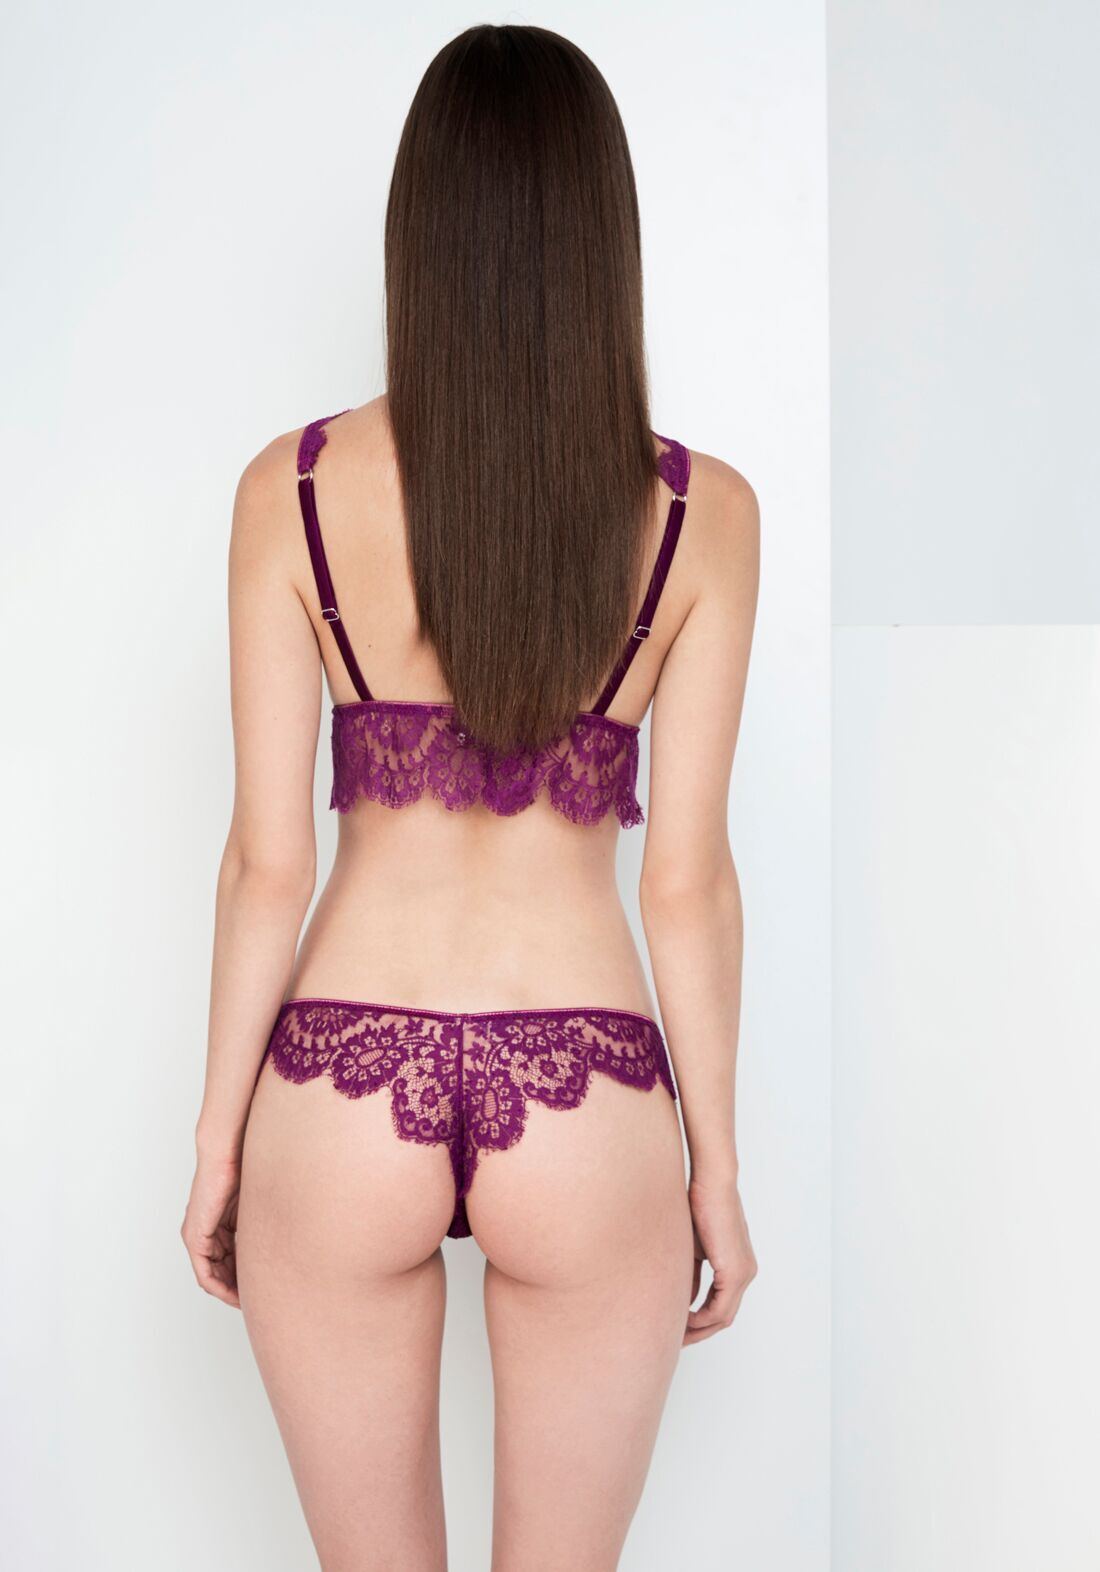 Noir Comme La Robe Lace Thong in Violet Sauvage